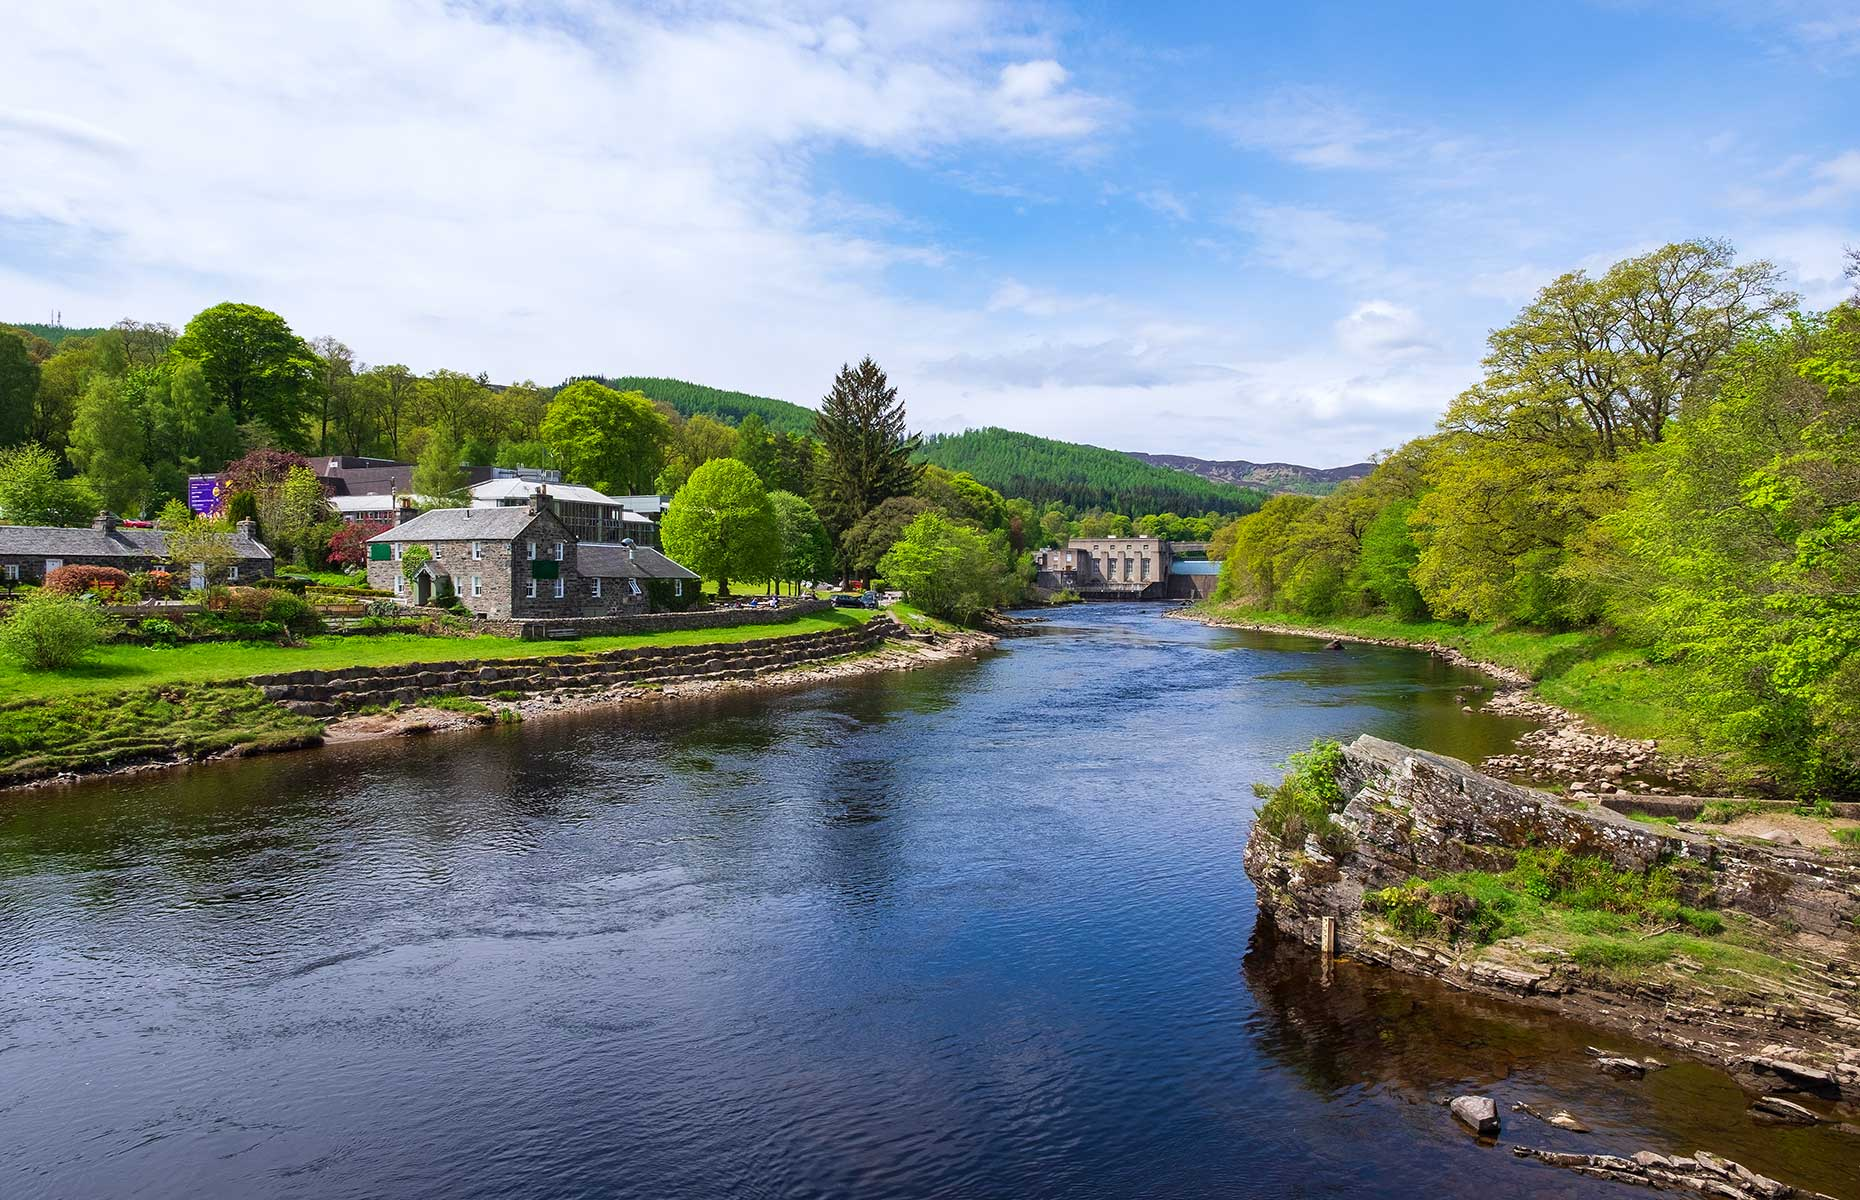 Pitlochry and it's hydroelectric dam (Image: Harald Lueder/Shutterstock)